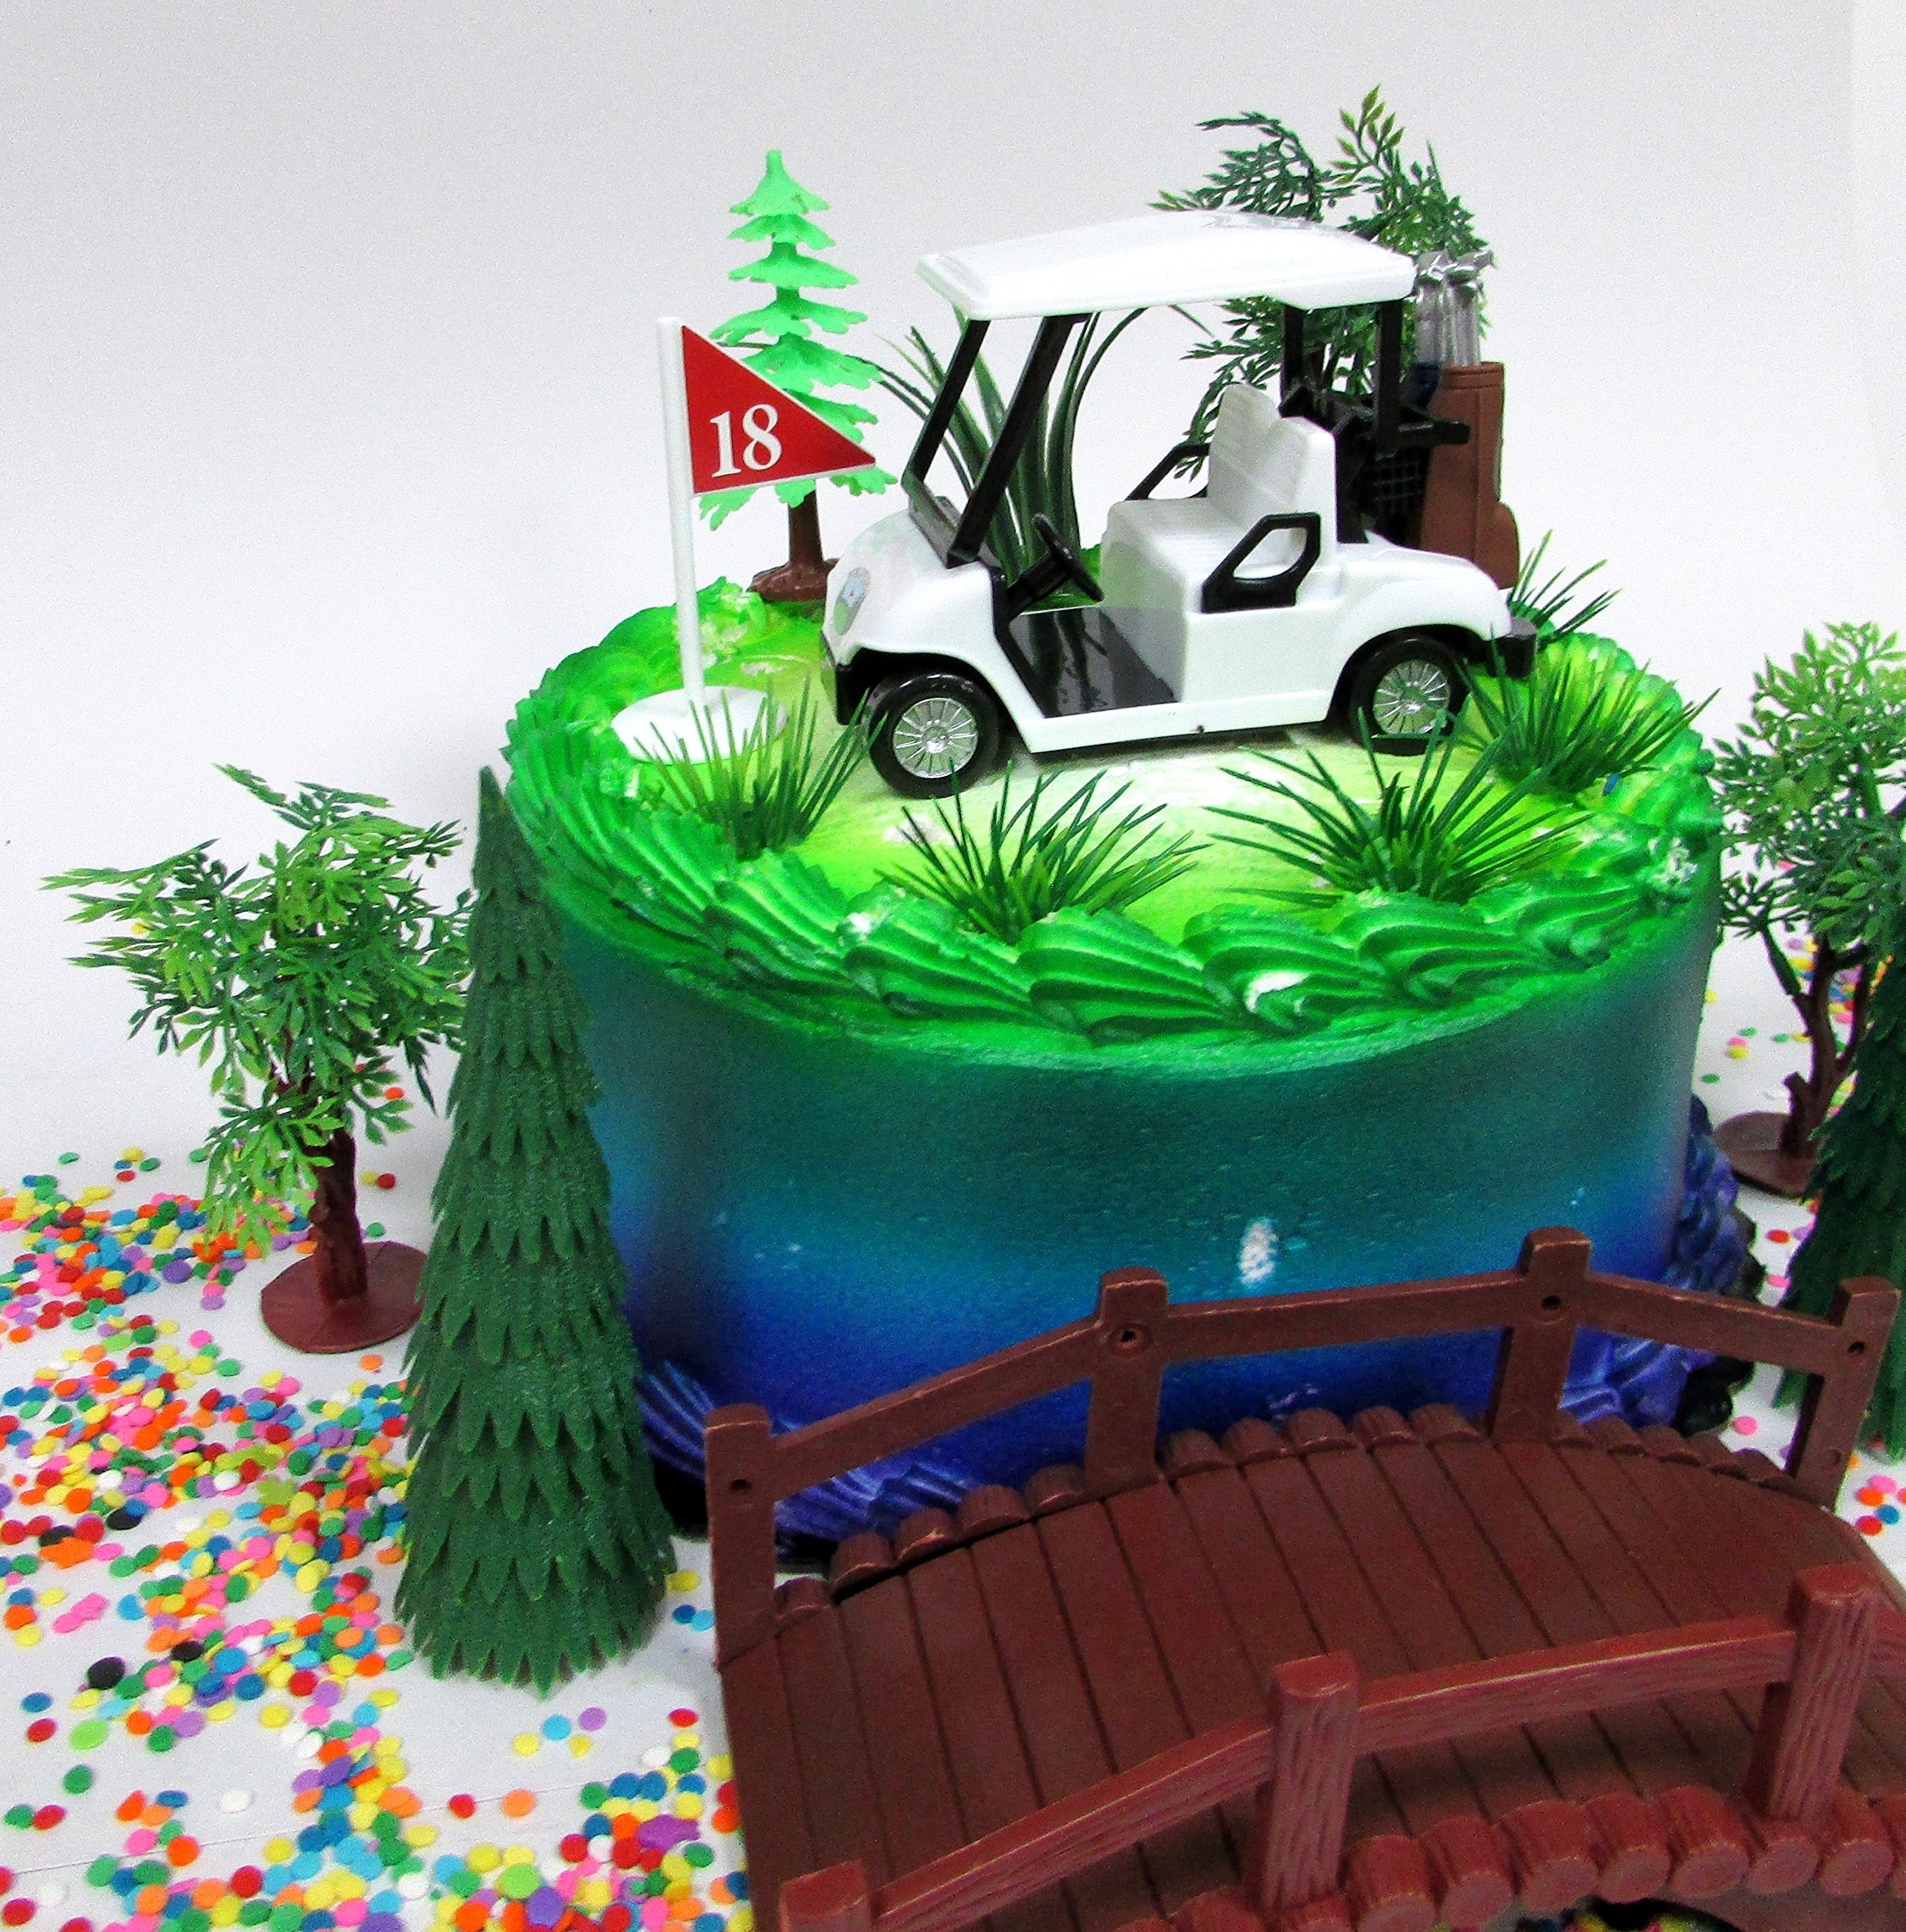 Golfing Themed 12 Piece Golfer Birthday Cake Topper Set Featuring Golf Cart And Decorative Accessories